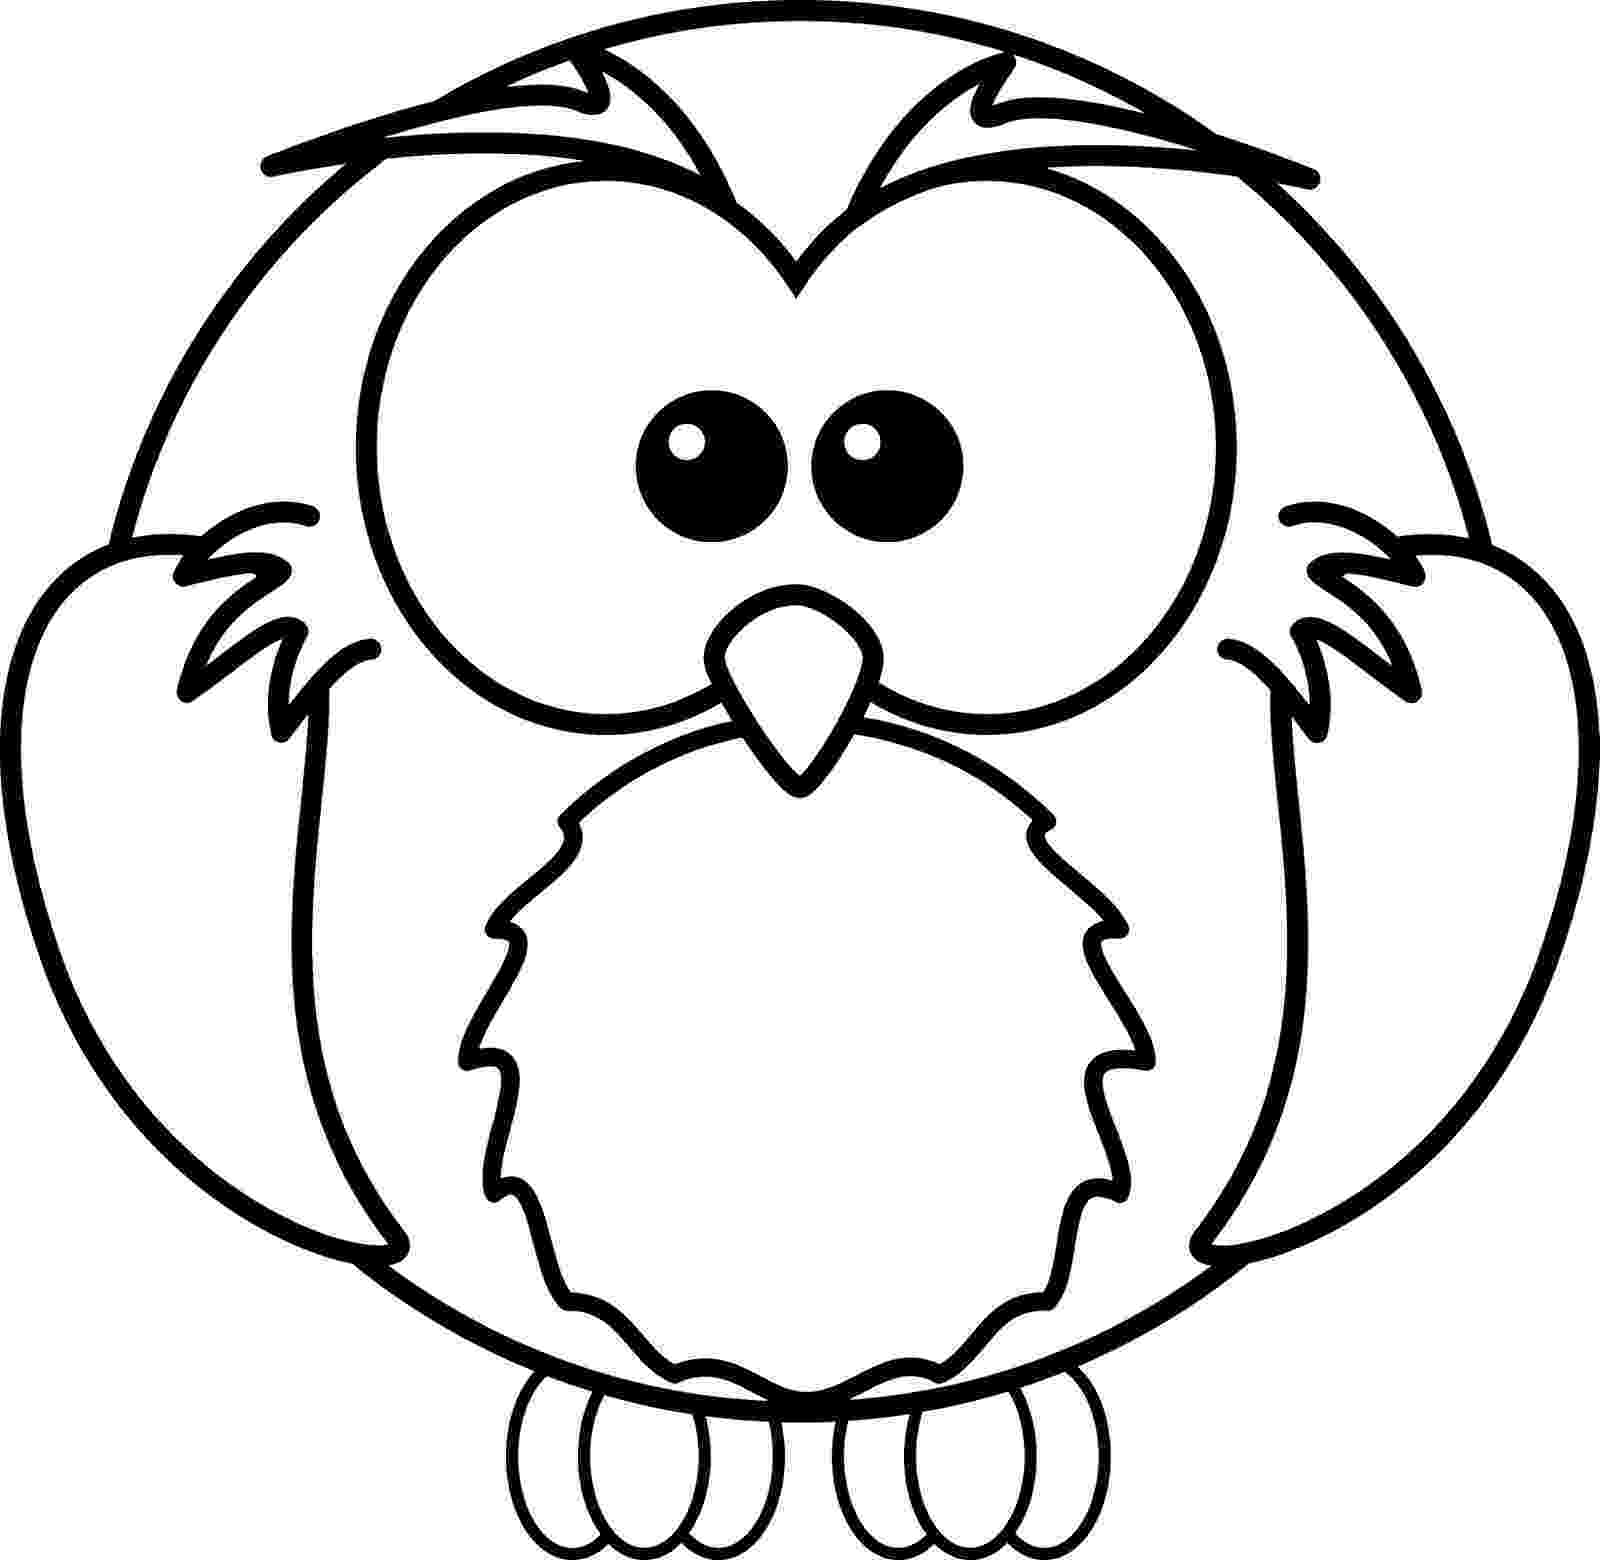 colouring pictures of owls coloring pages of owls pictures colouring